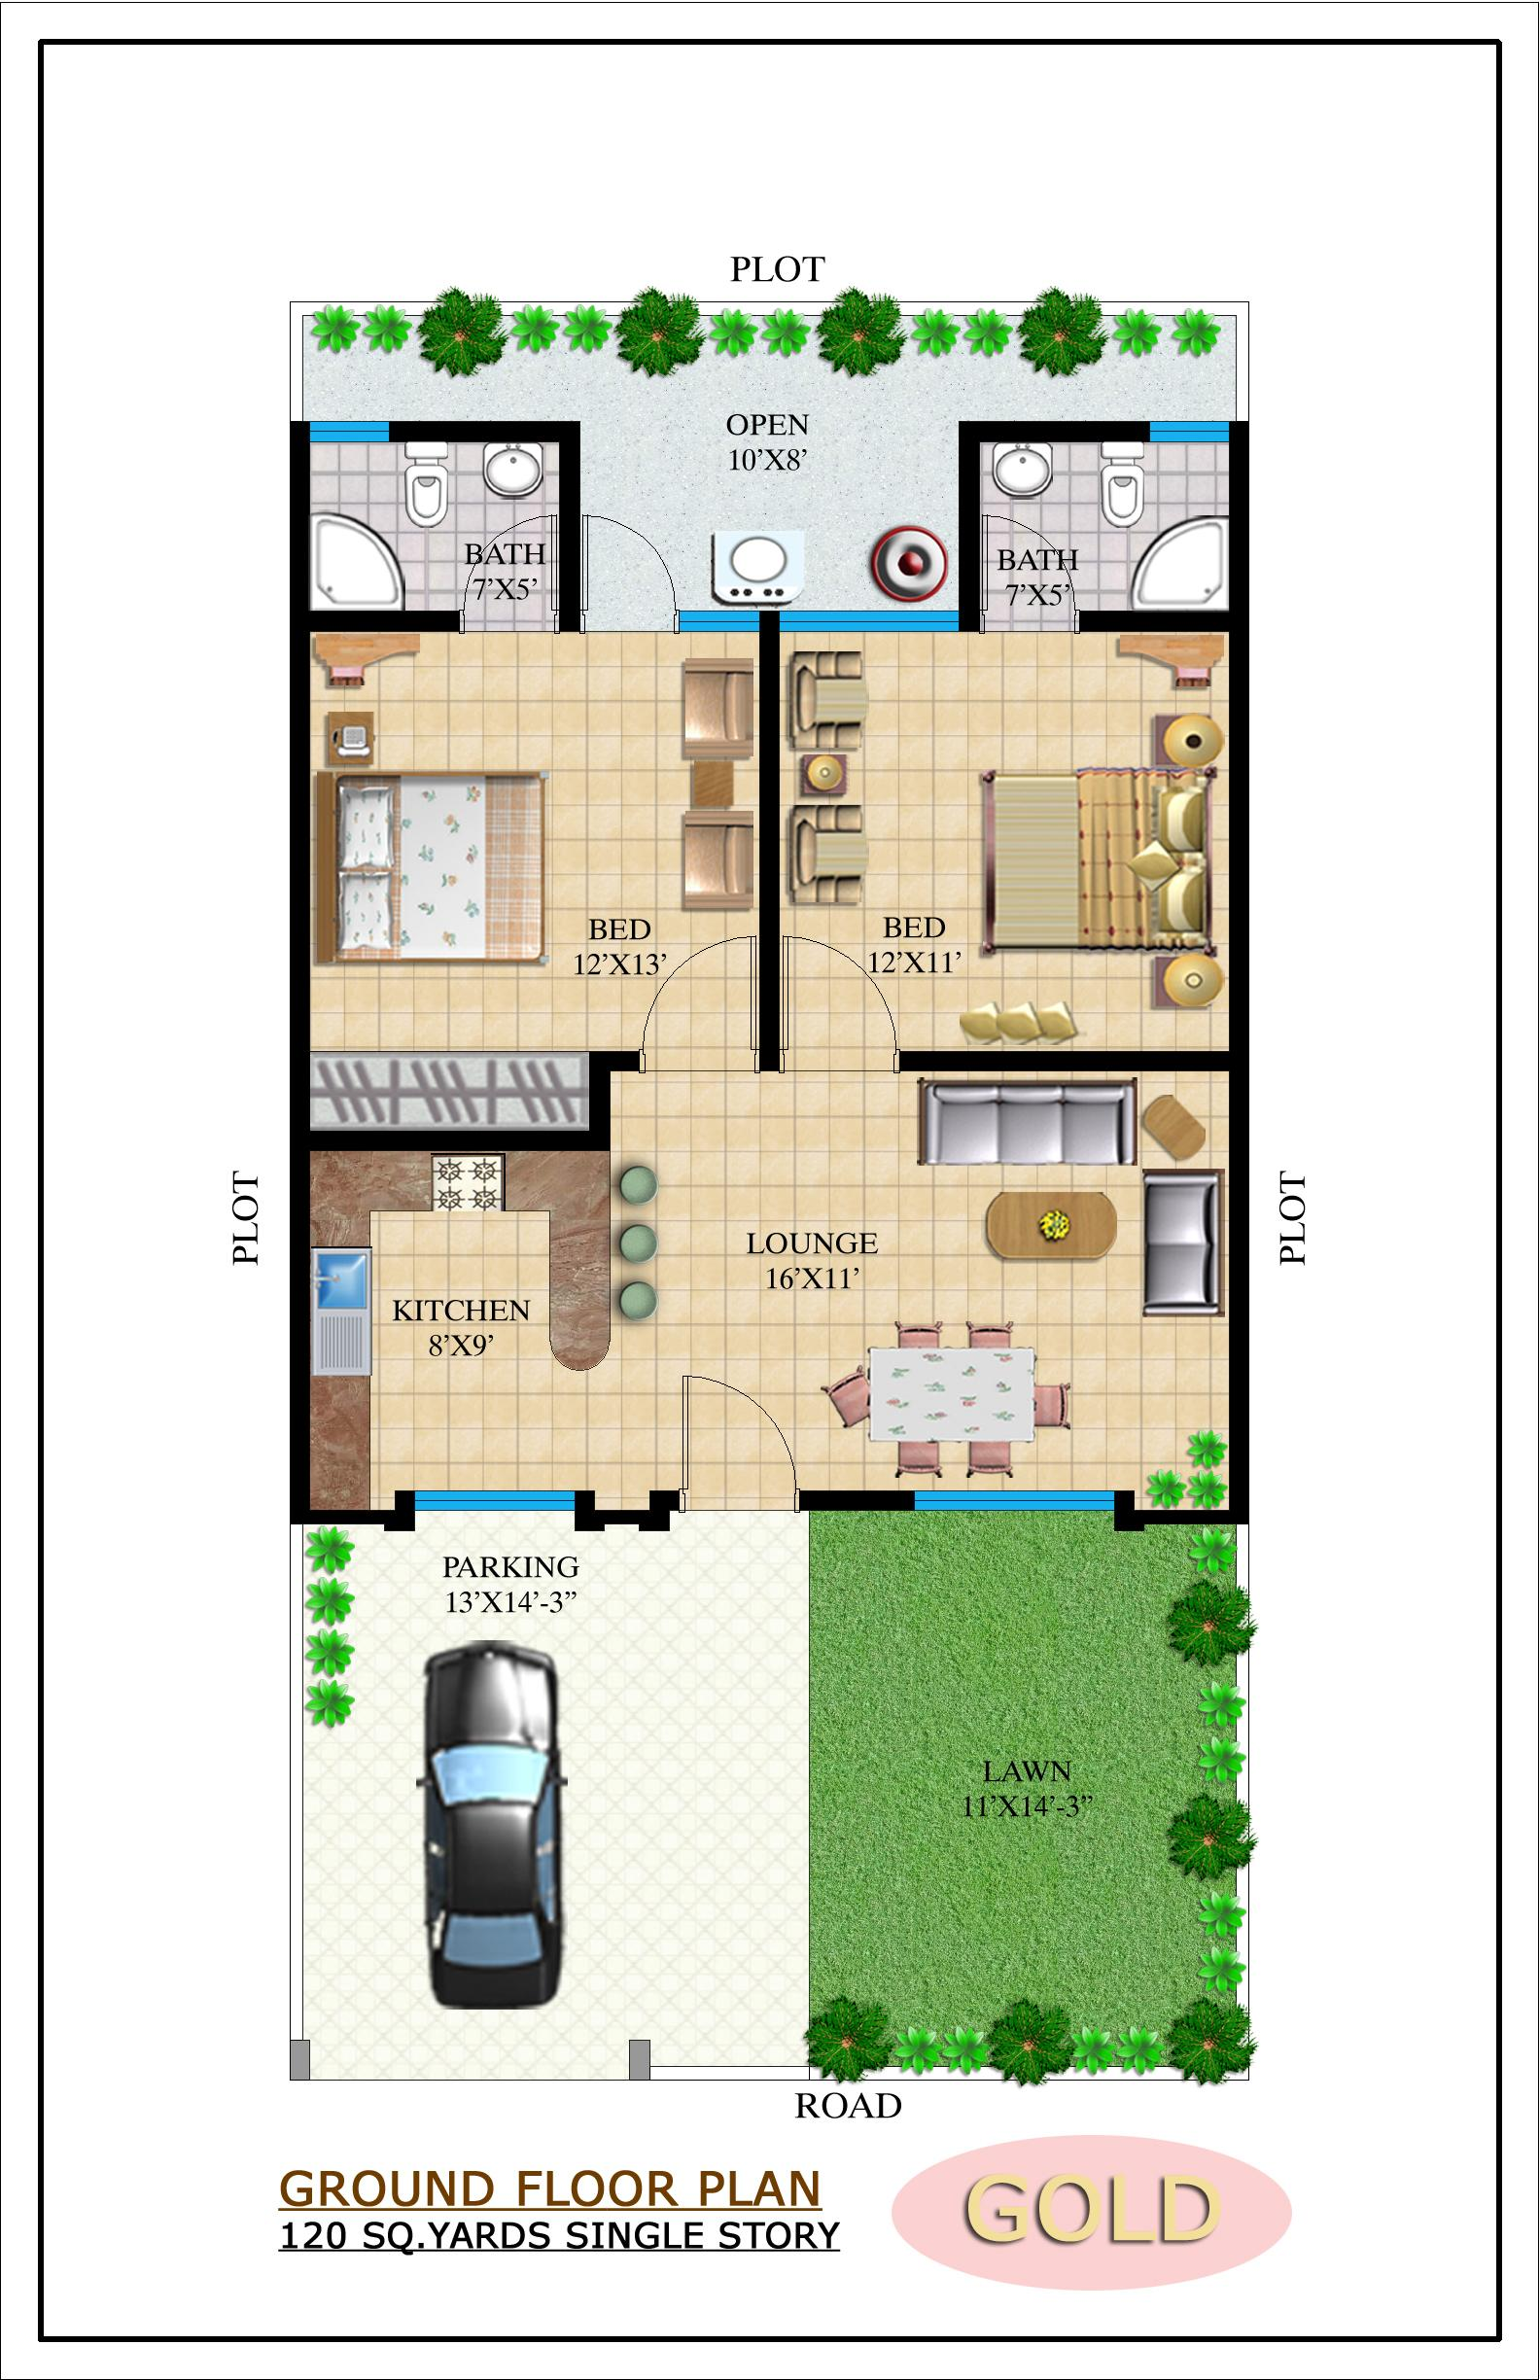 Pakistani small house plans home design and style for Pakistani home plans designs